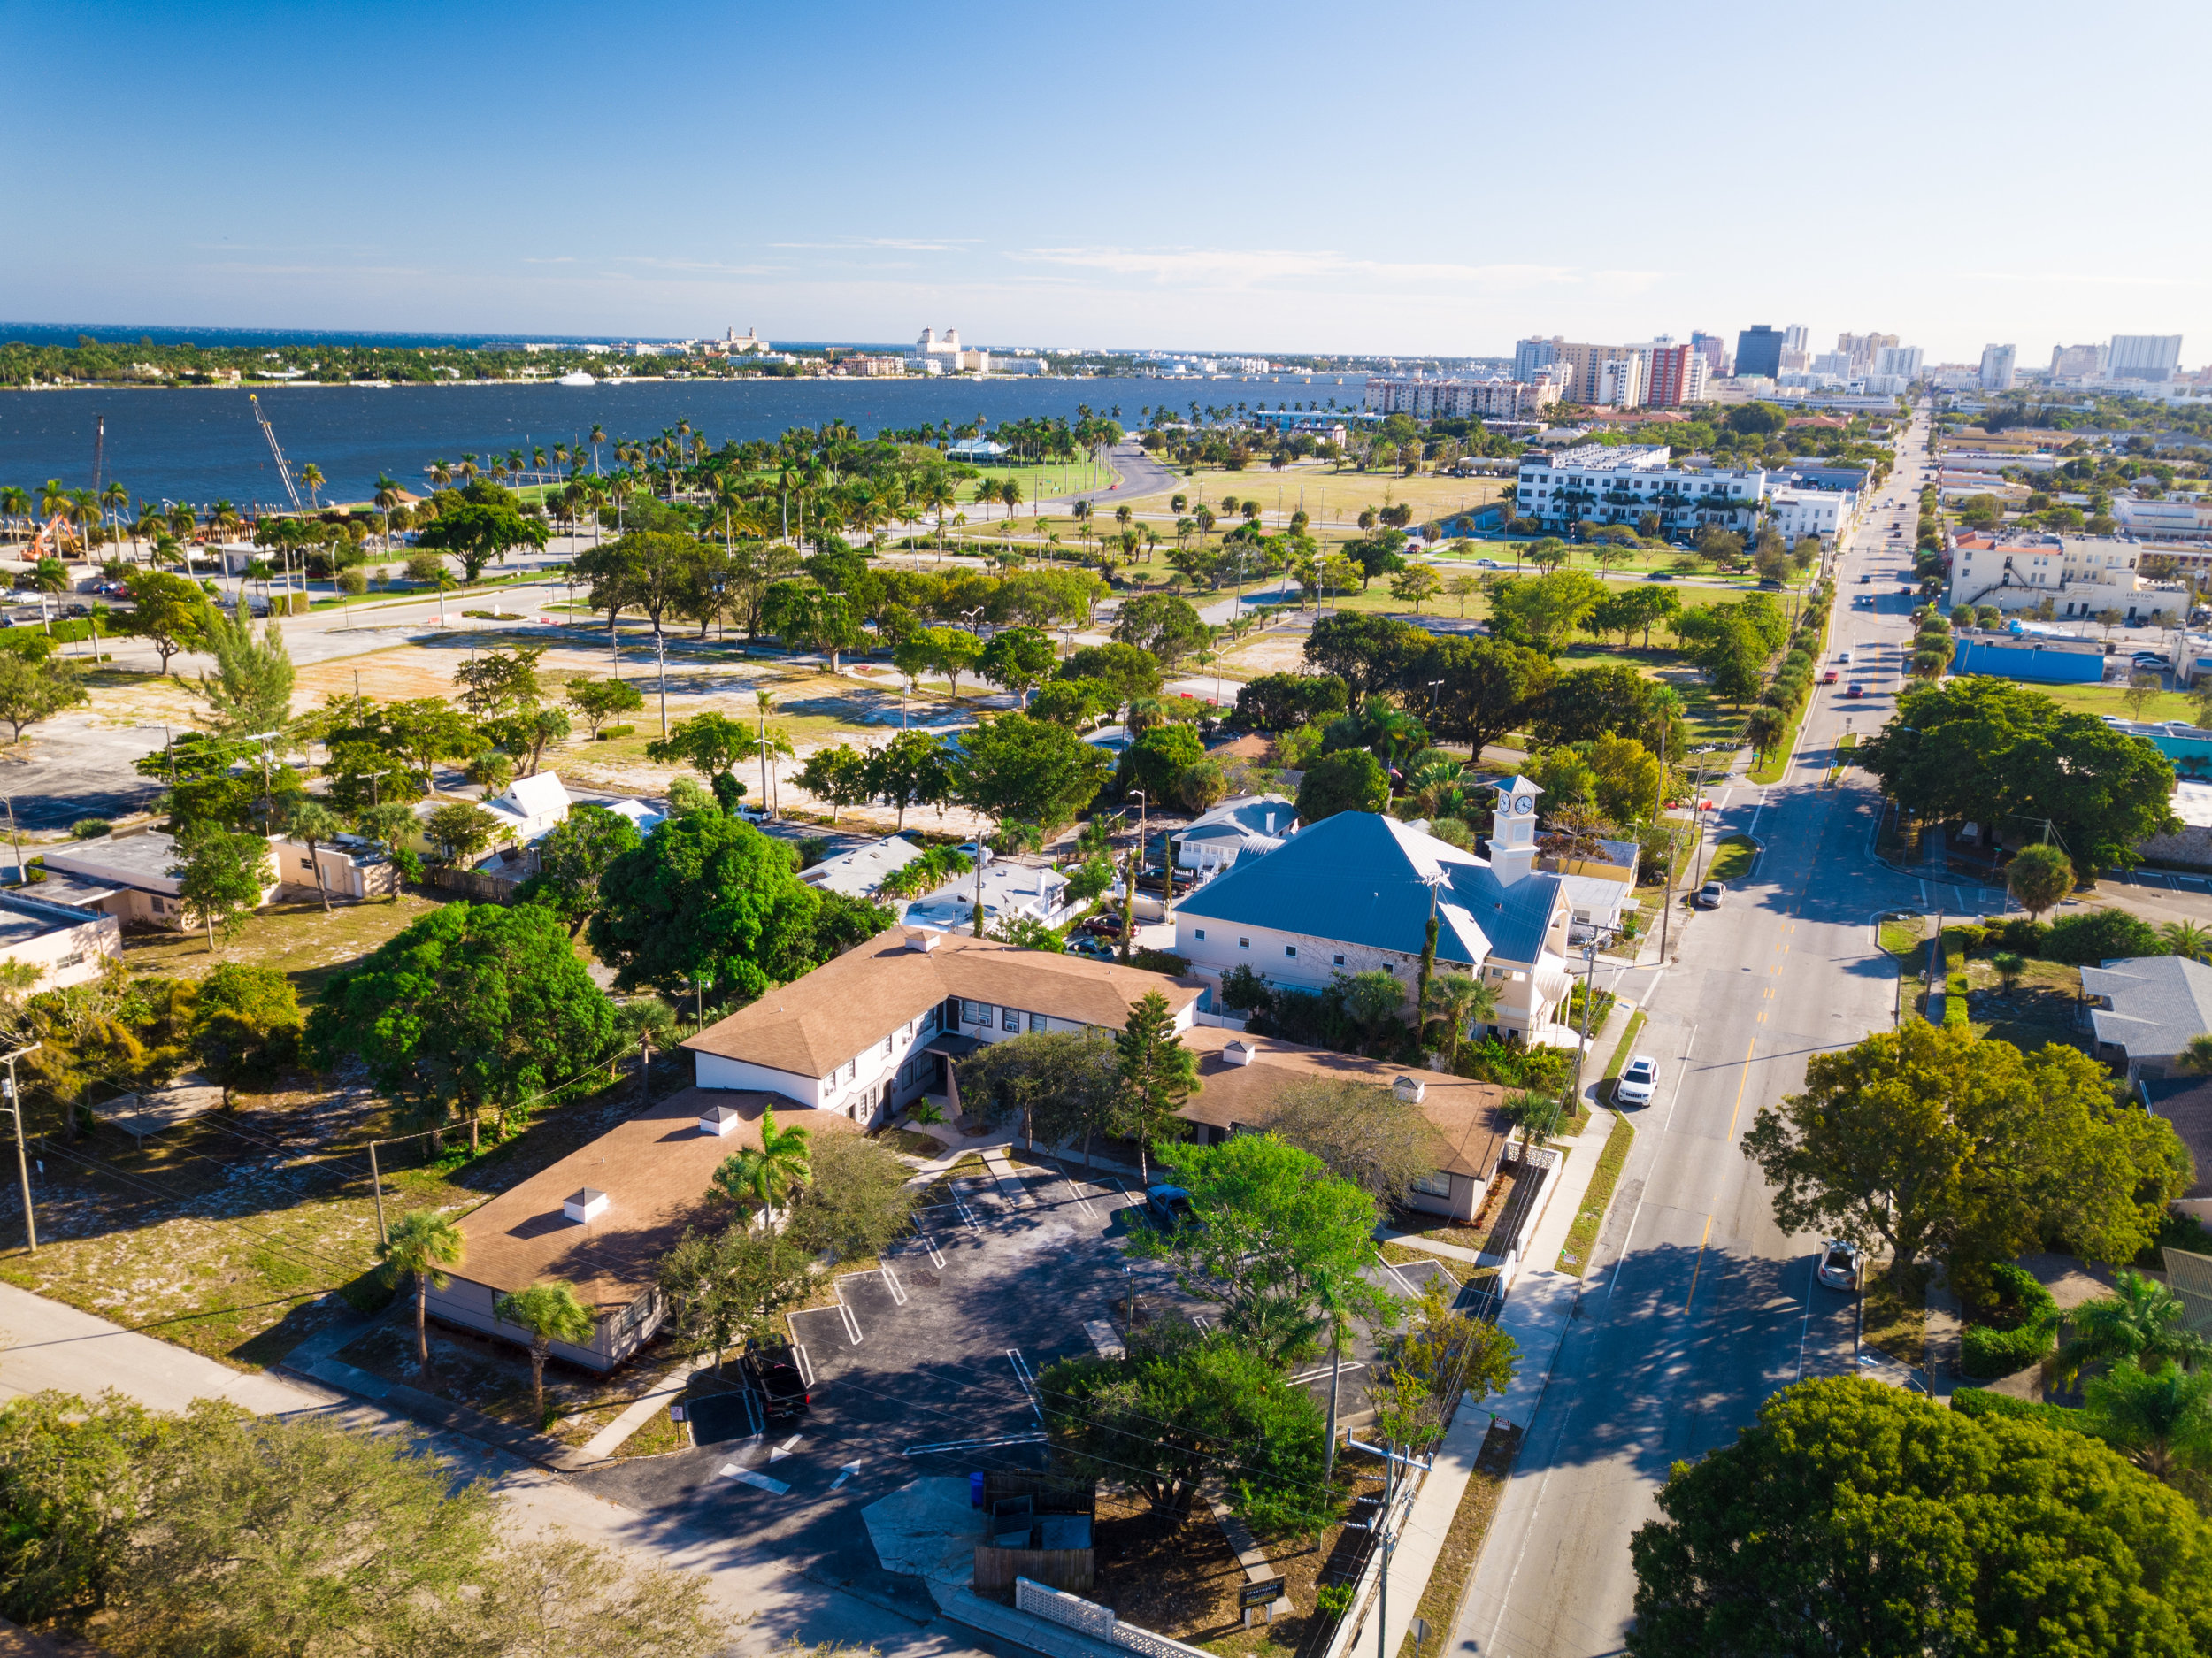 Poinsettia Place - Experience West Palm Beach living at Poinsettia Place Apartments. This community is located in Northwood directly adjacent to Currie Park, Flagler Drive and charming shops, galleries, coffeeshops and restaurants.